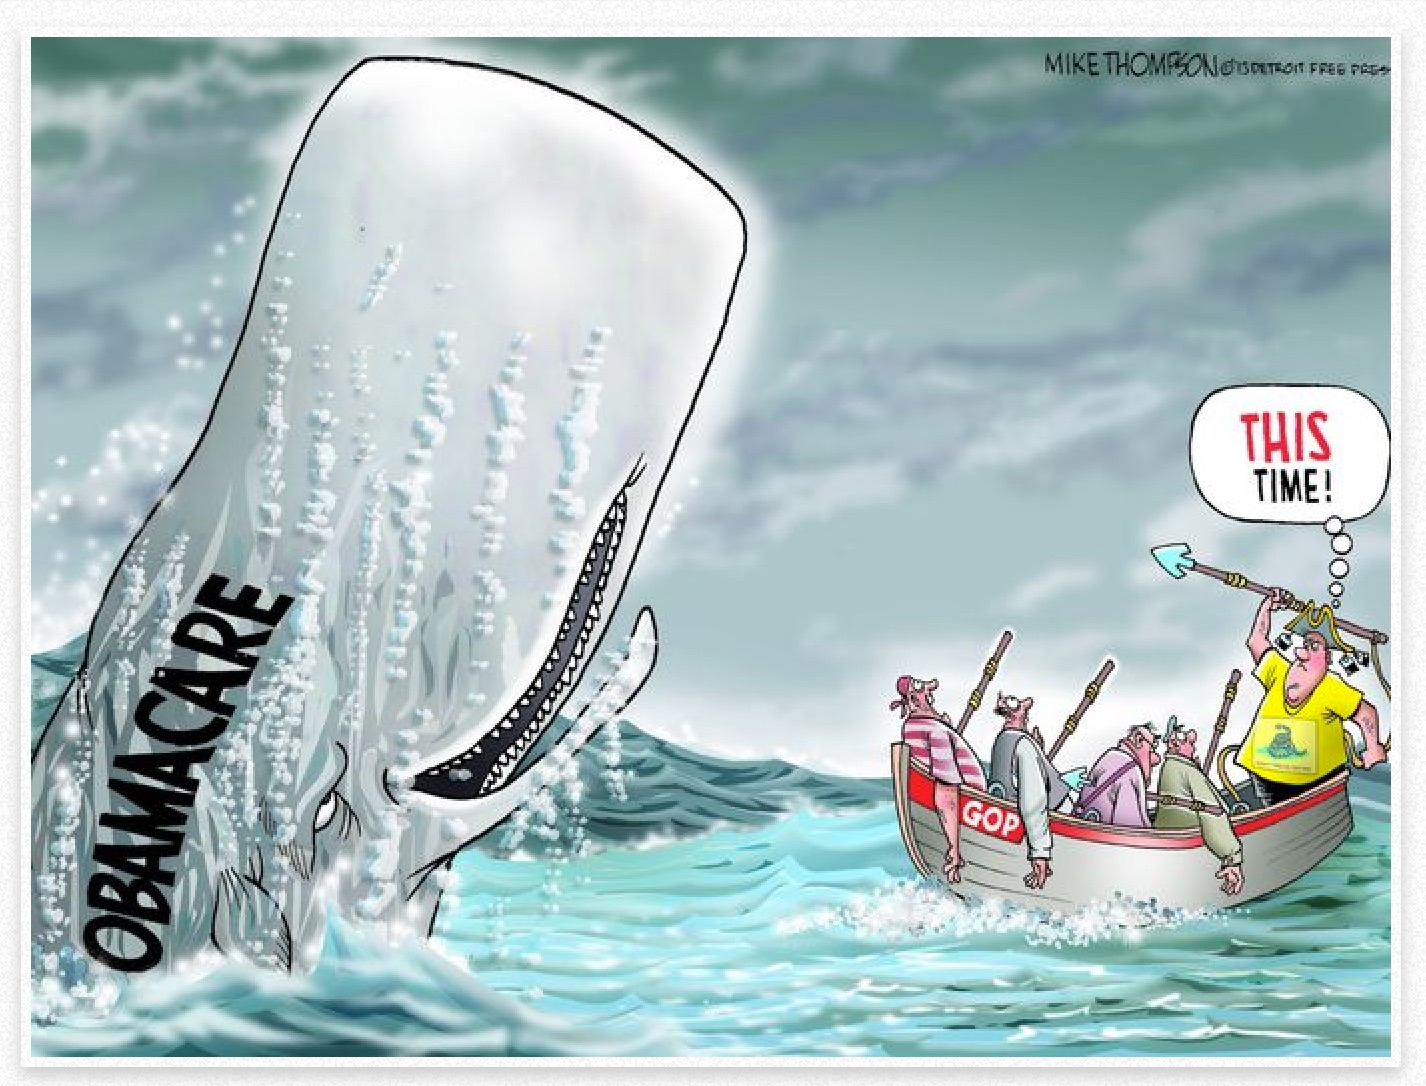 ACB might be in that whaling boat too by now.jpg